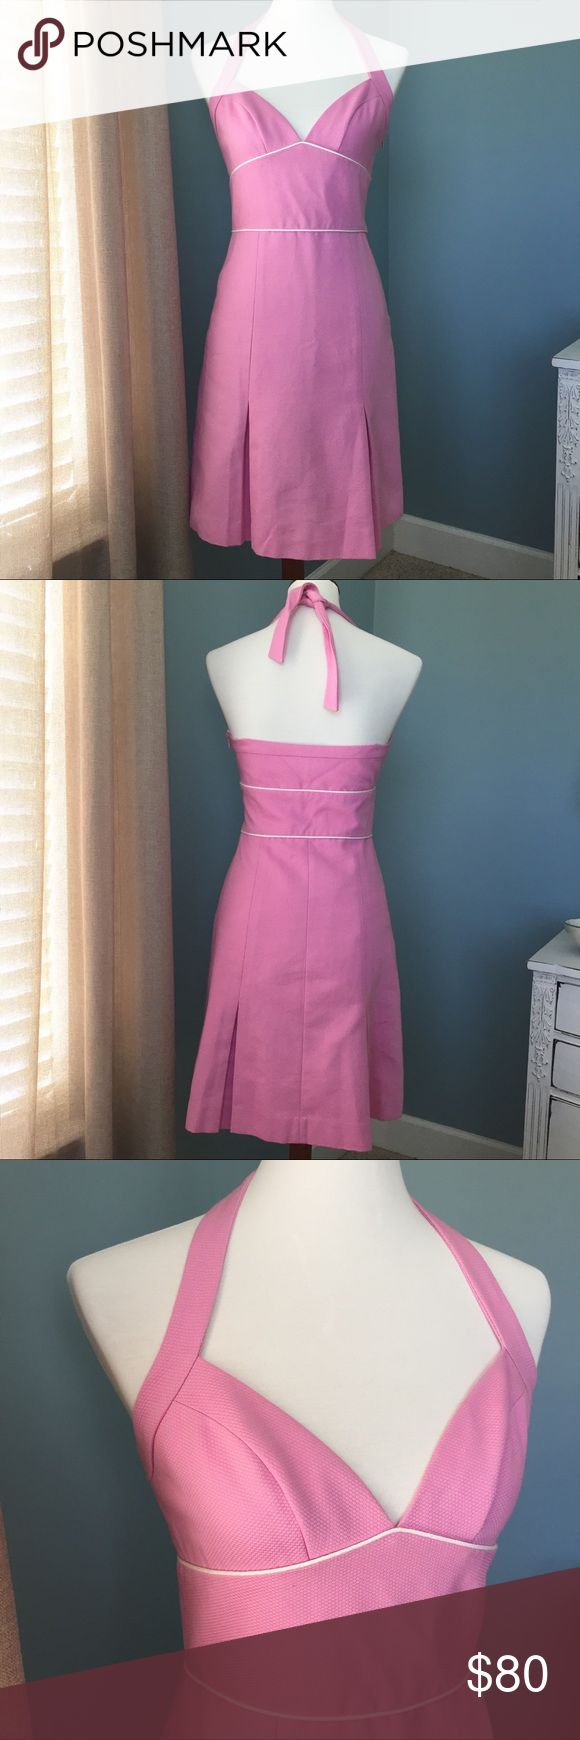 🔥Flash Sale🔥NWT Laundry by Shelli Segal Dress This is Summer🌺 Beautiful pink/off-white halter dress - gorgeous fabric - tailored for an amazing fit - pleats - zipper closure - fully lined- NWT Laundry by Shelli Segal Dresses